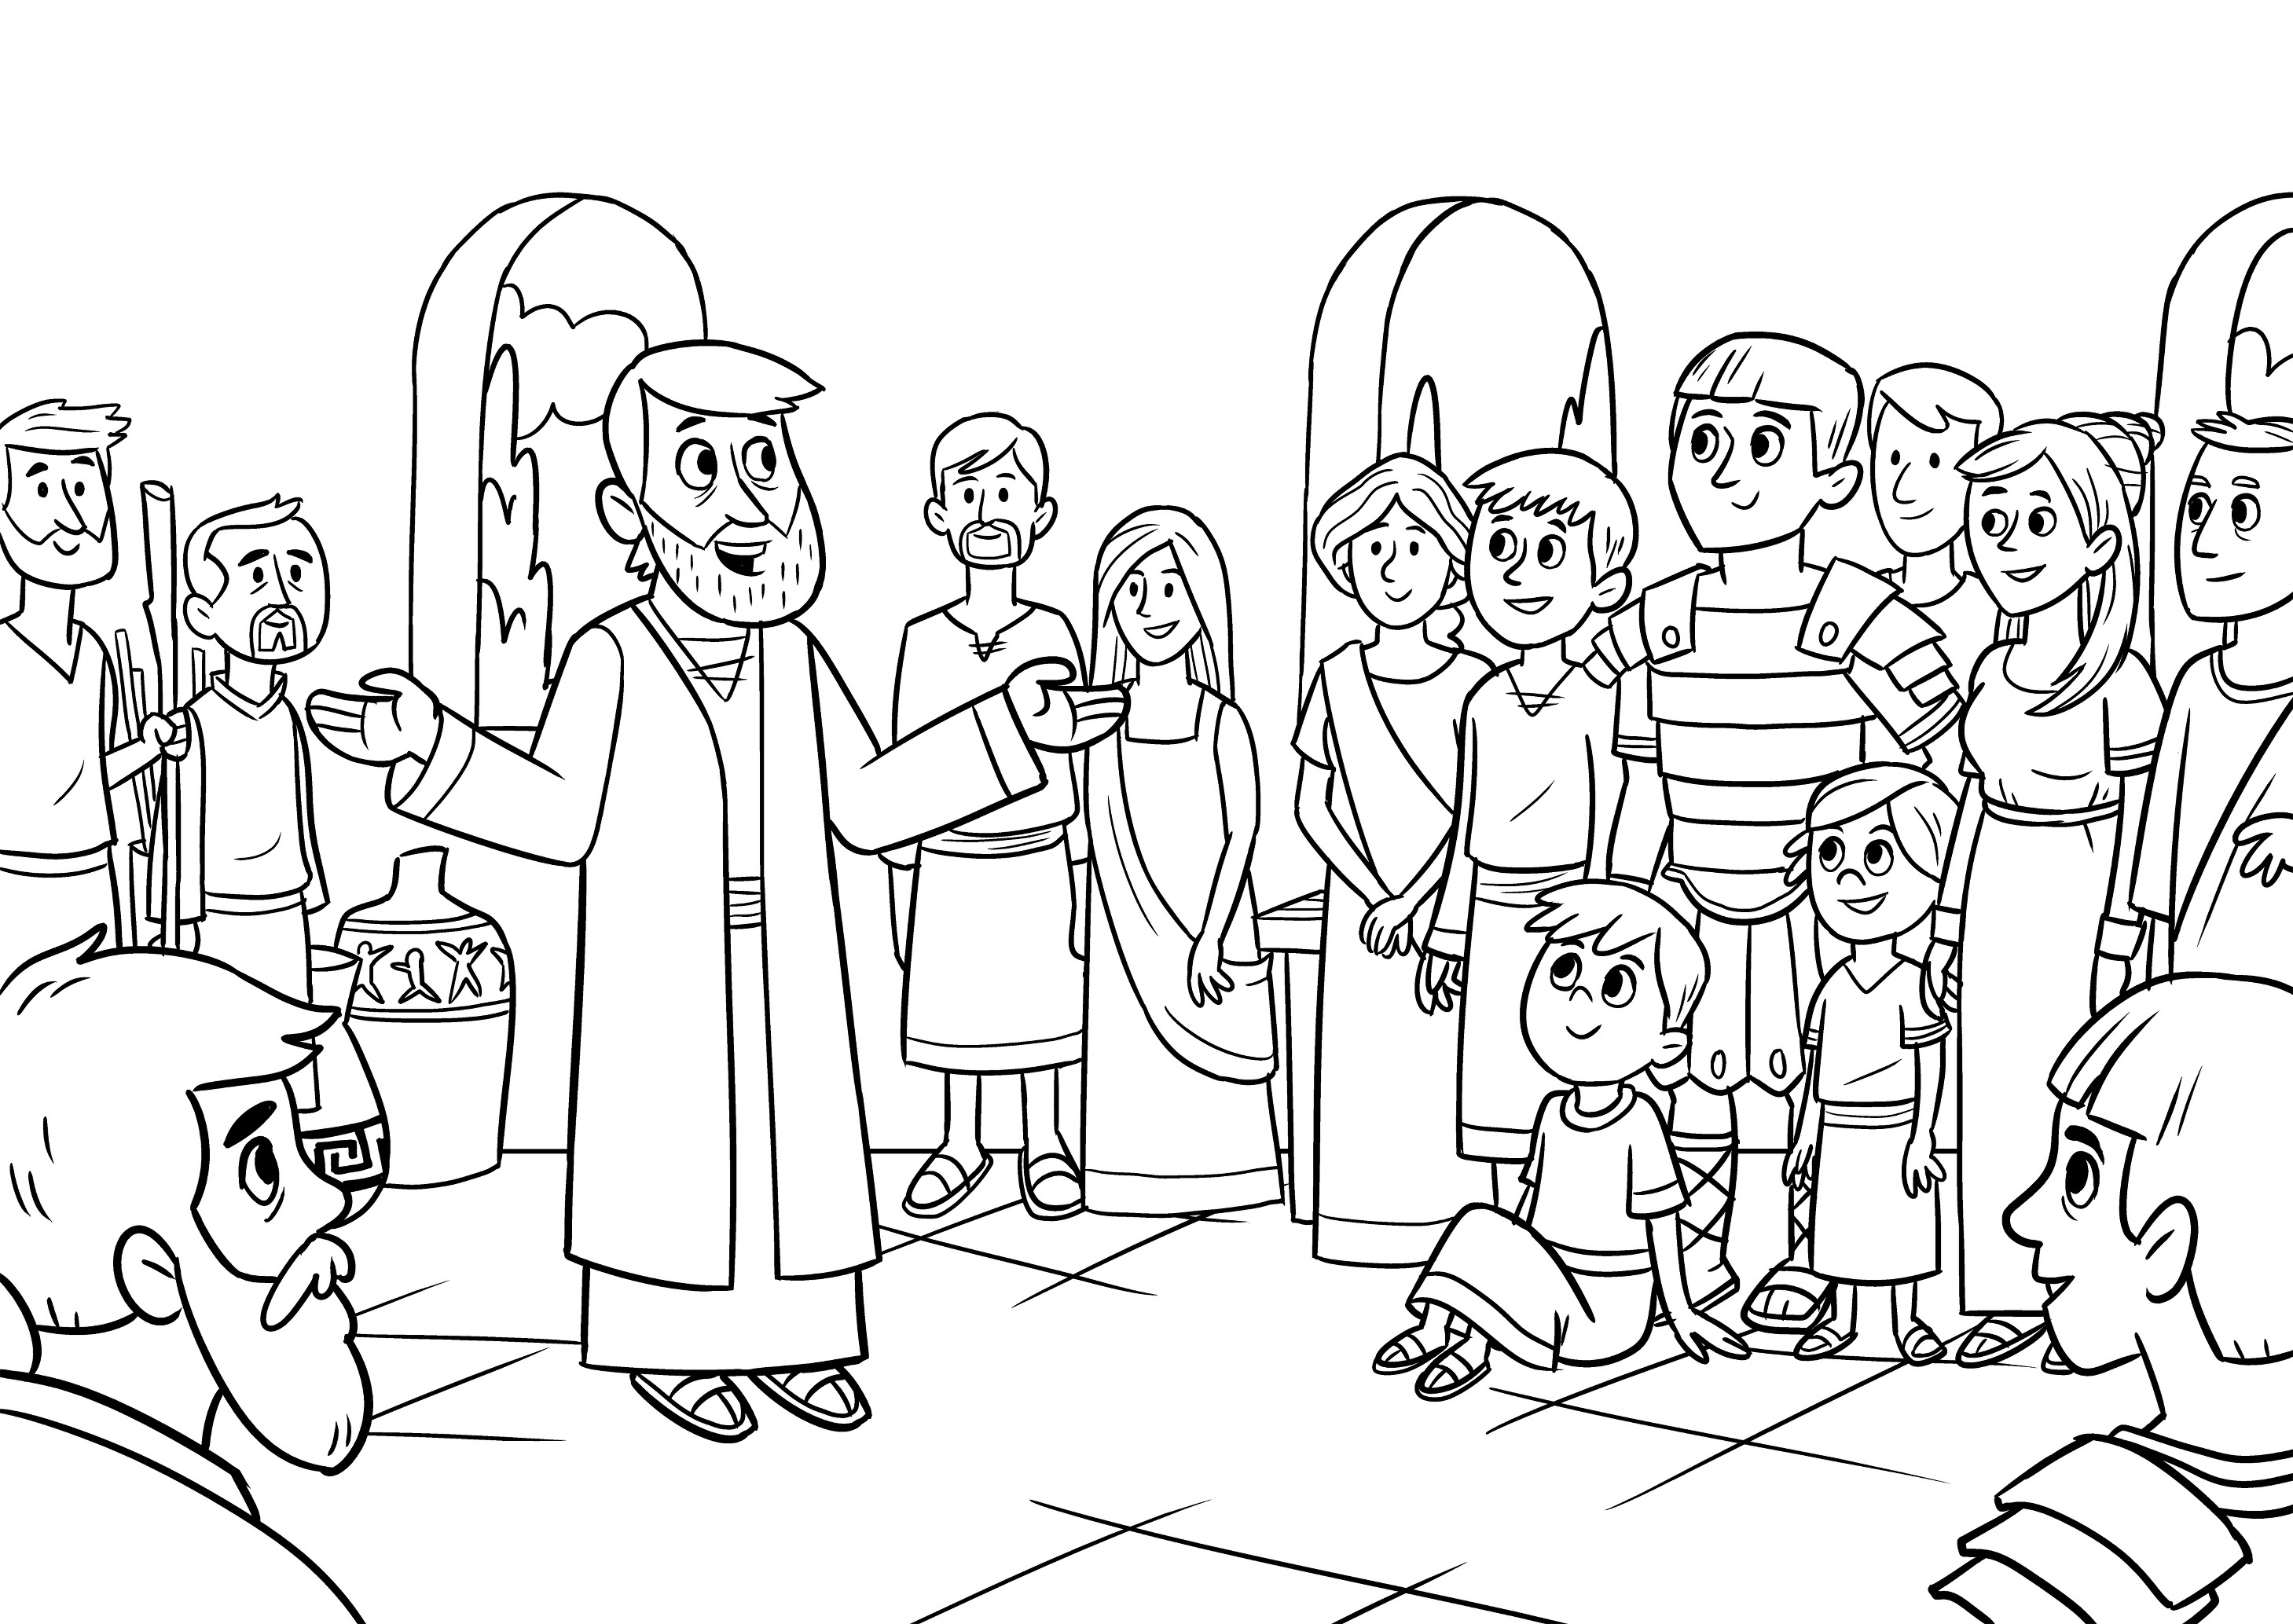 Cornelius Coloring Sheet Www Topsimages Com